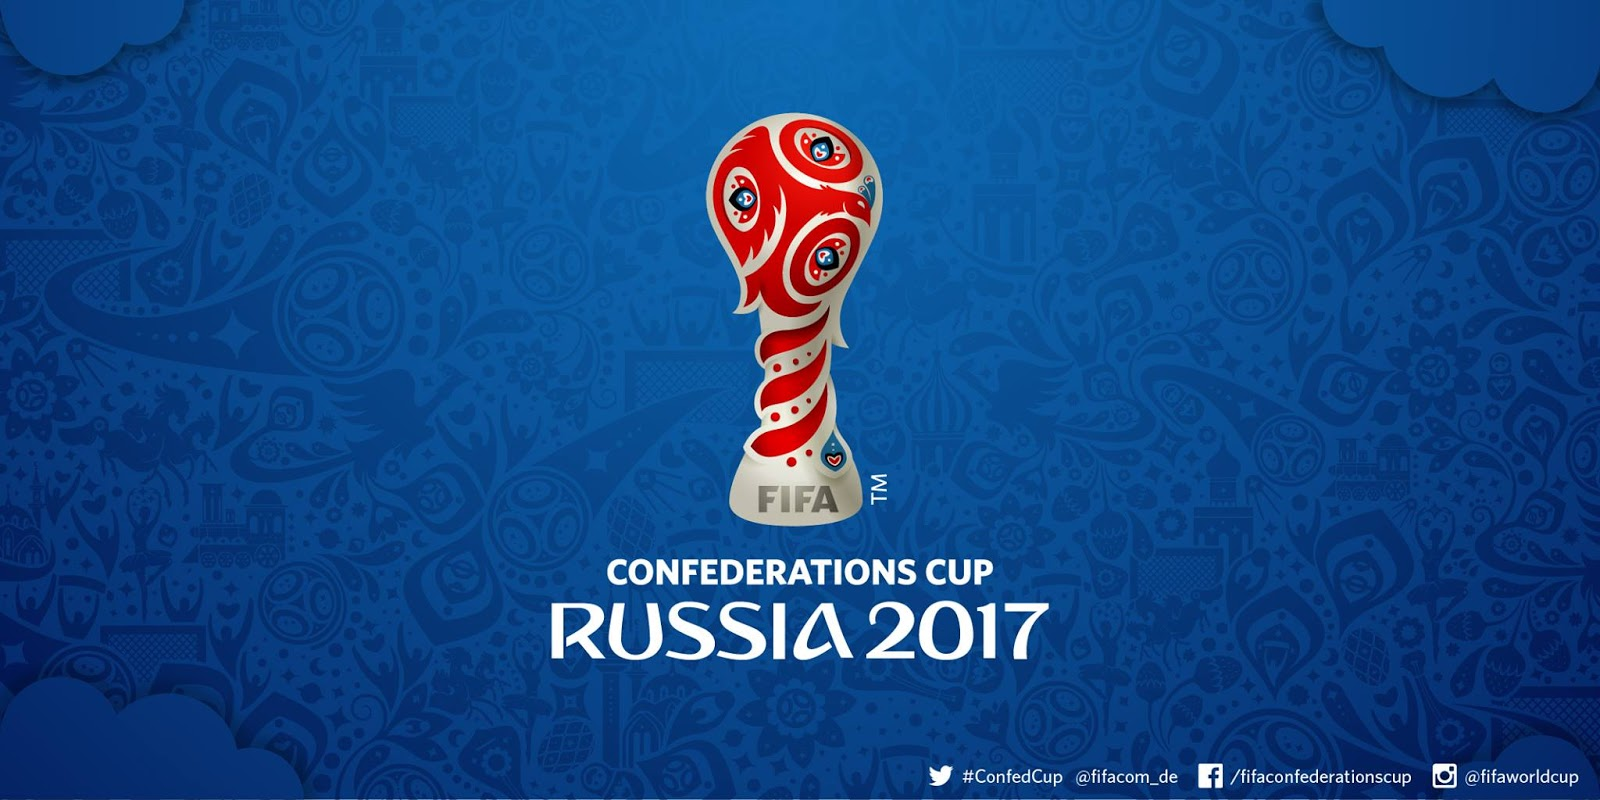 Cile-Australia streaming - diretta tv, dove vederla (Confederations Cup)